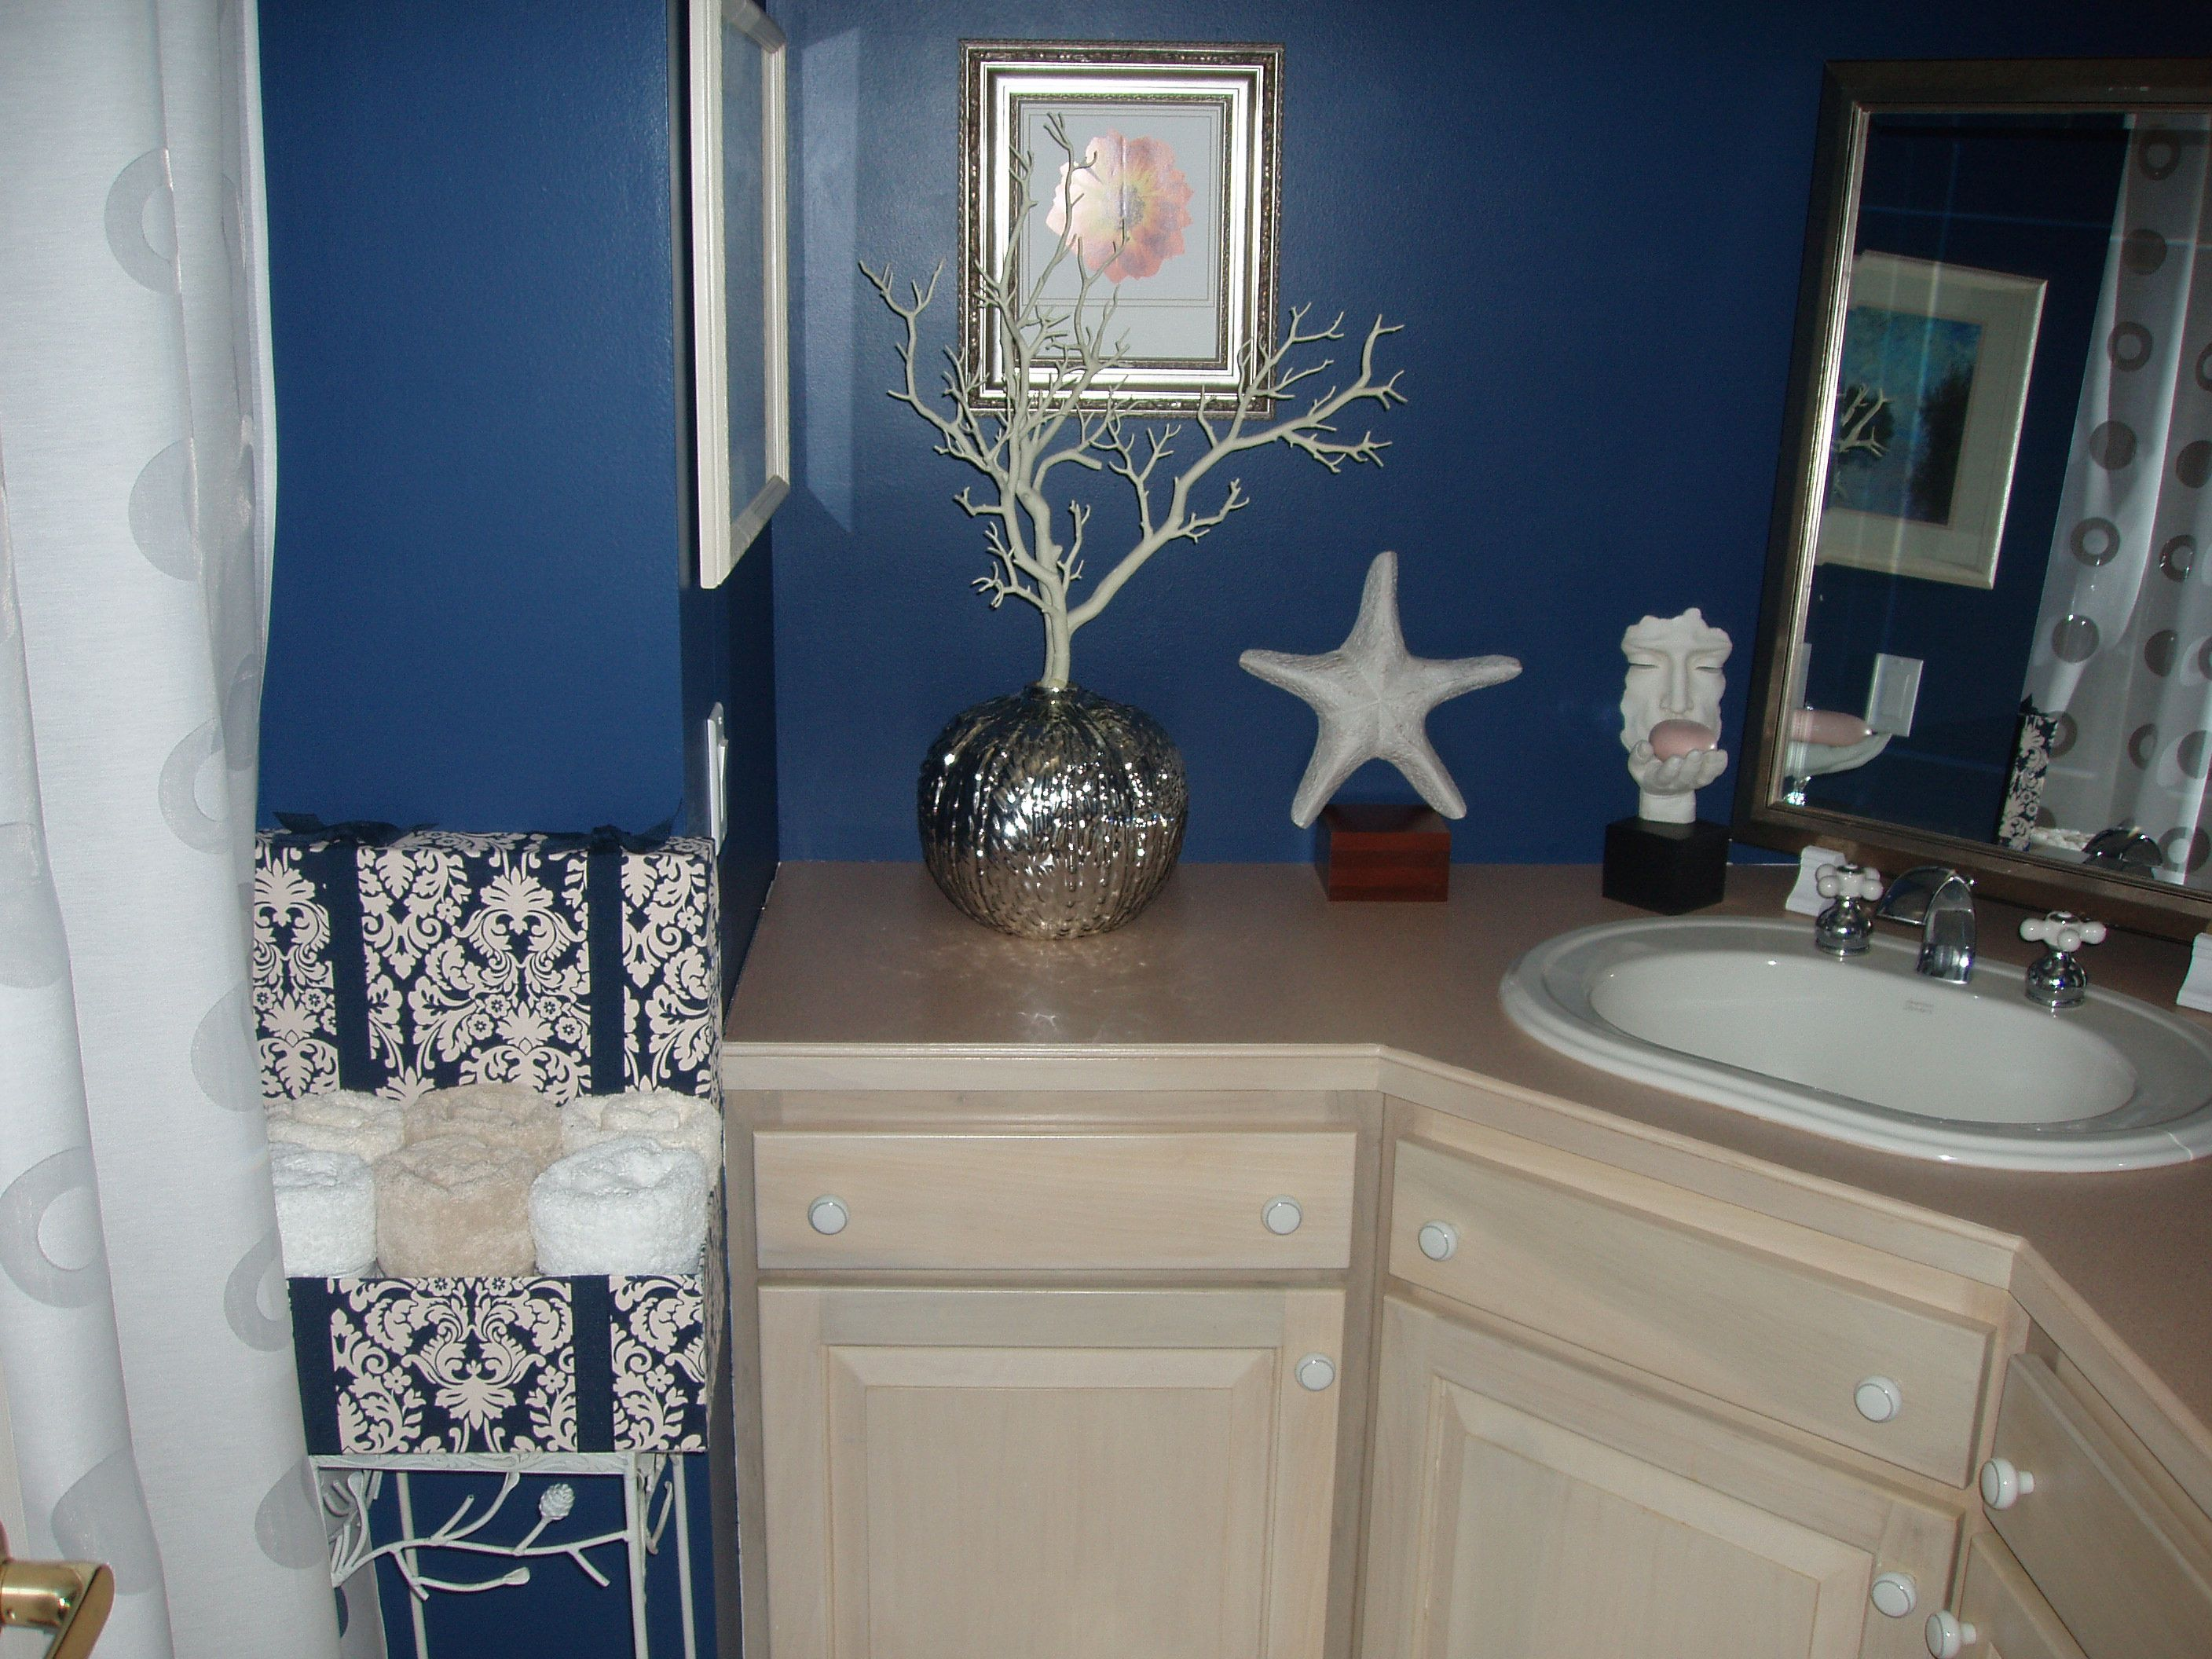 This bathroom used to be just a plain cream color. Now its navy blue ...